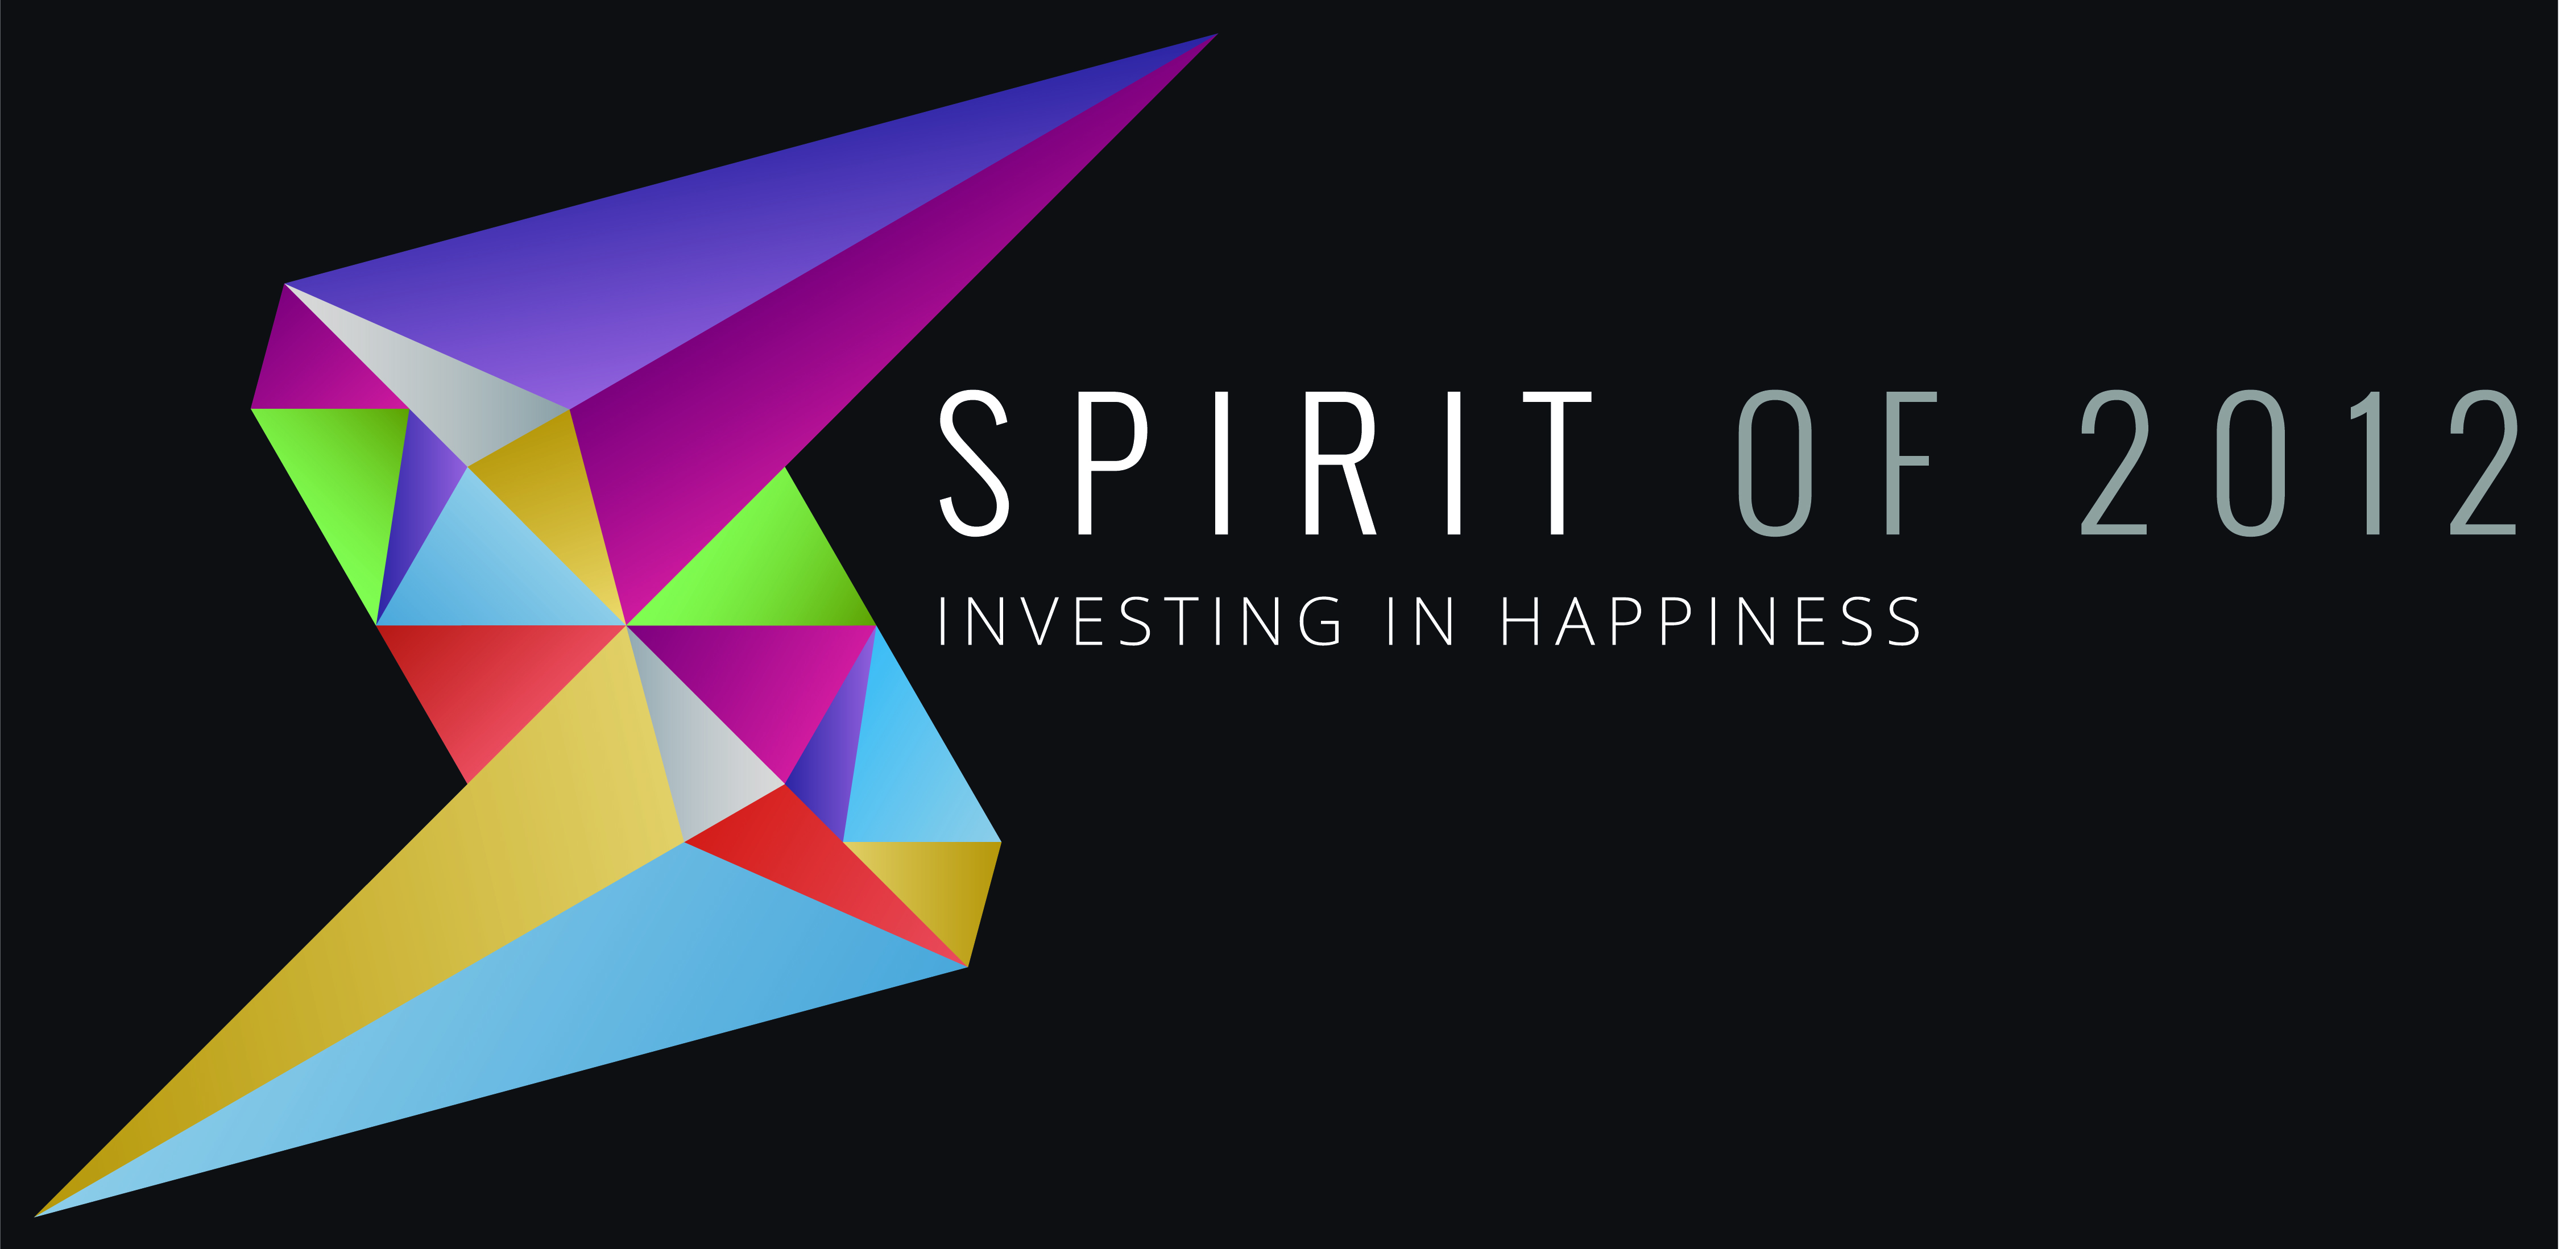 New Spirit logo in black